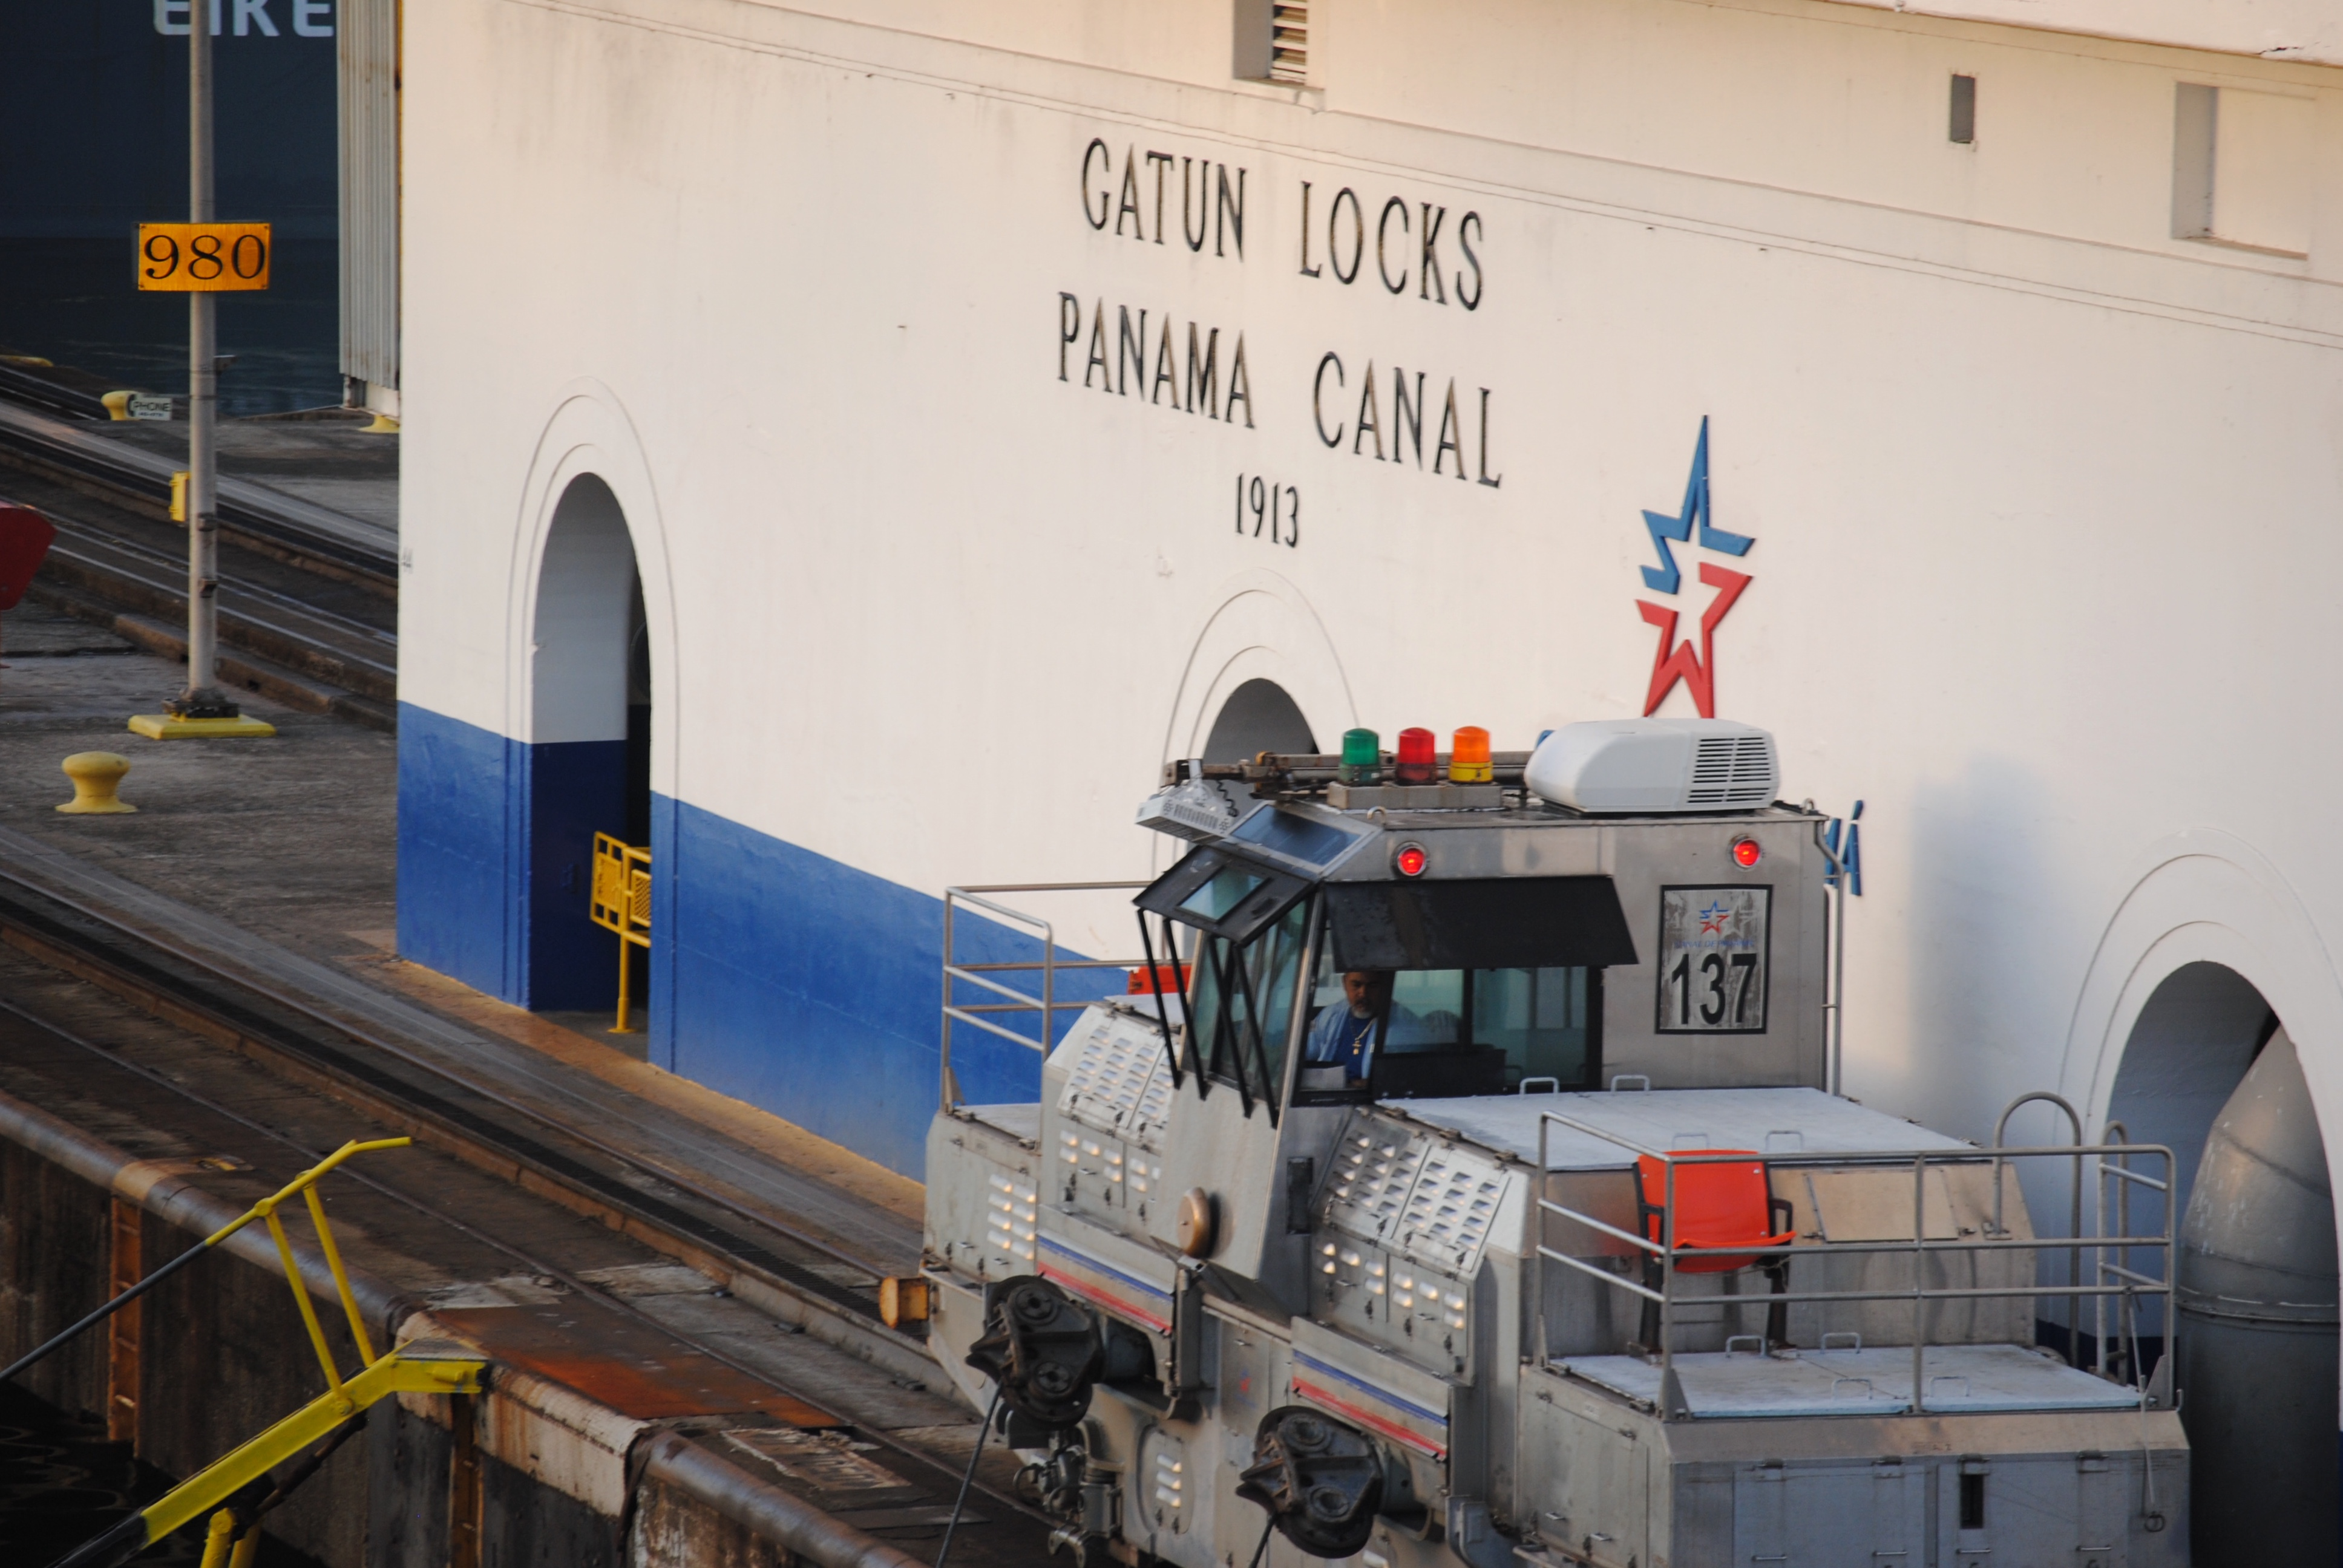 Gatun Locks of the Panama Canal